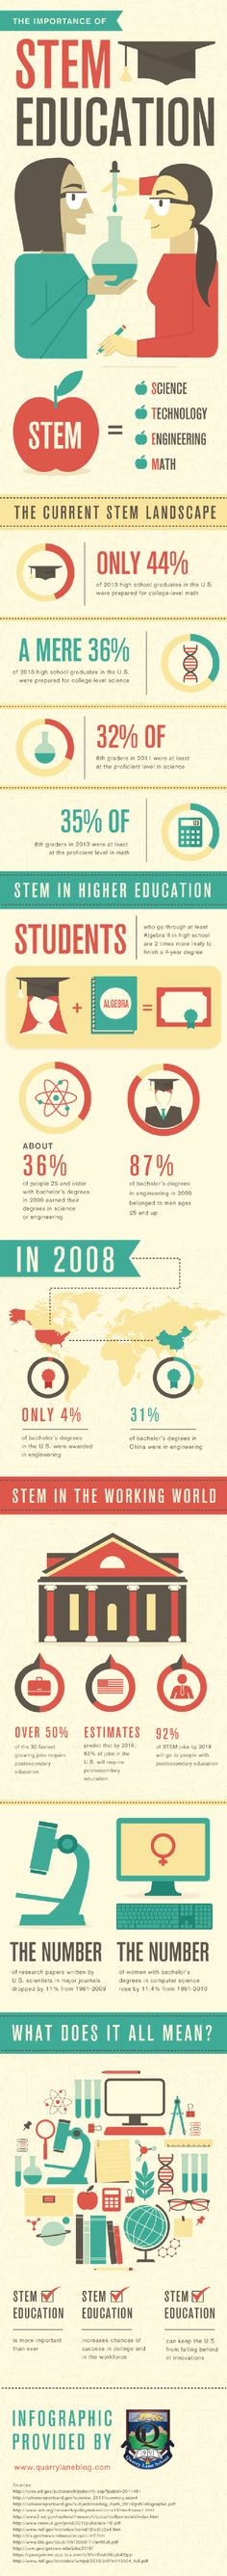 Learn more about the current #STEM landscape in this infographic.